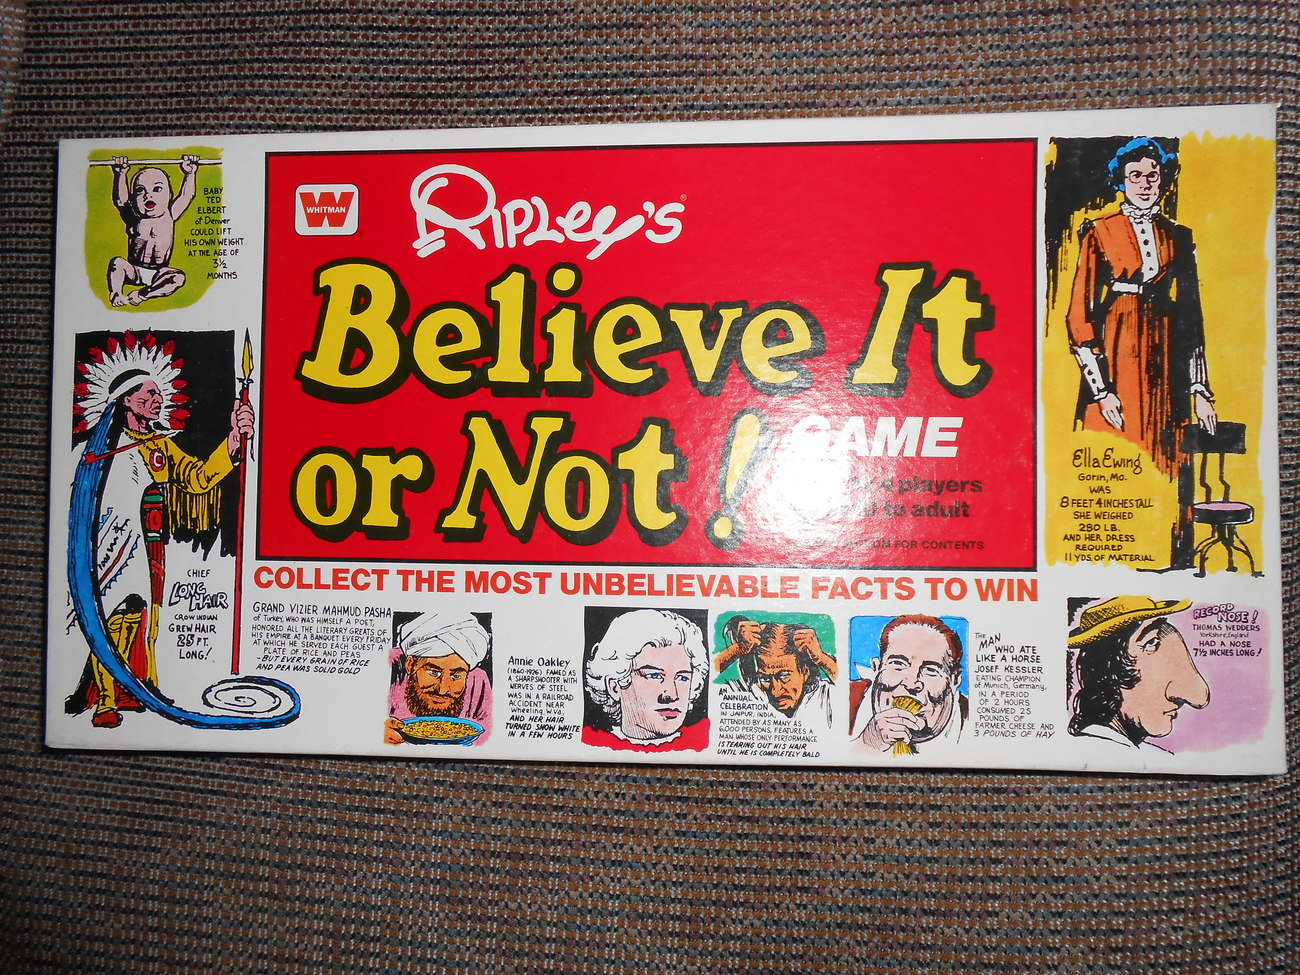 Ripley's believe it or not st augustine coupon code